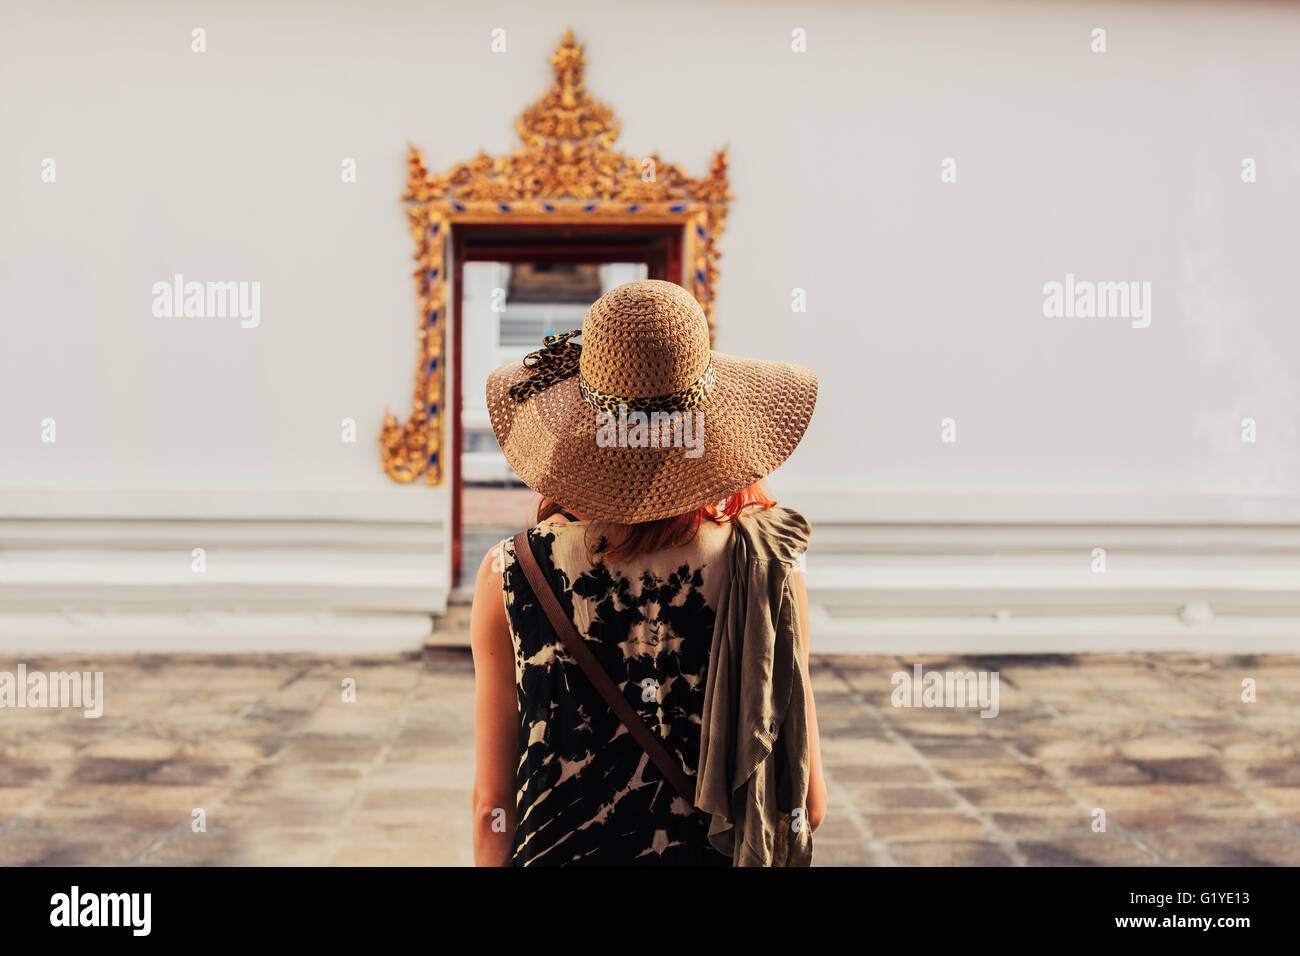 A young woman is looking at the elaborate entrance to a buddhist temple - Stock Image